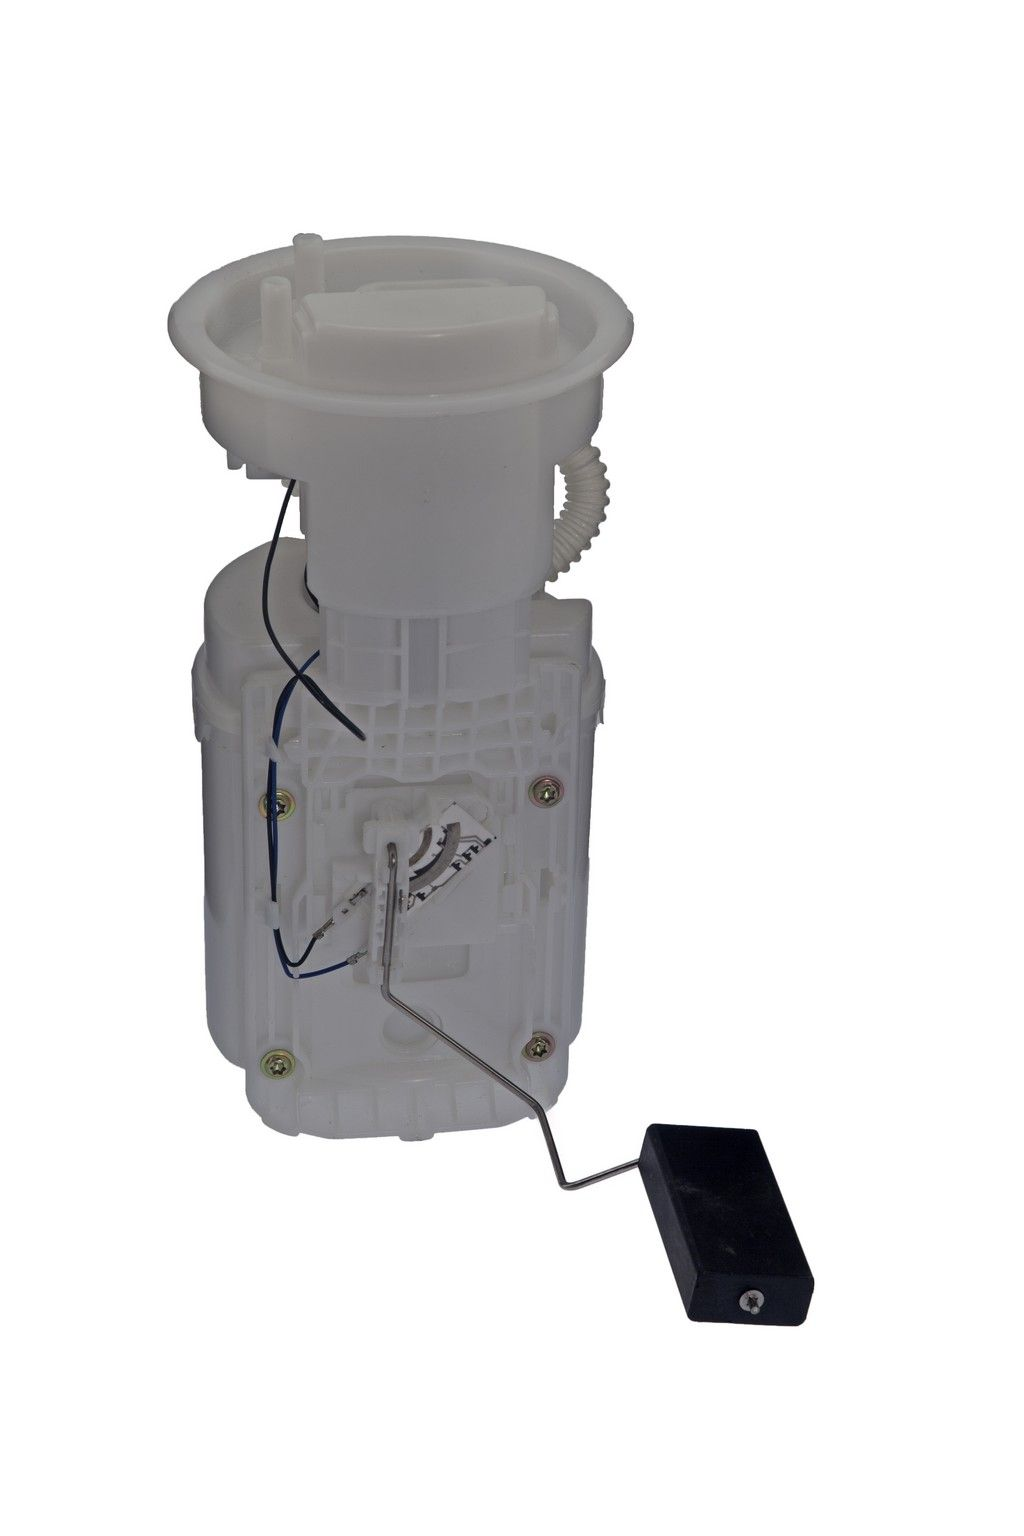 Volkswagen Beetle Fuel Pump Module Assembly Replacement Airtex Details About Electric Intank E8424m For Vw 1999 4 Cyl 18l Precise Pumps 402 P8424m